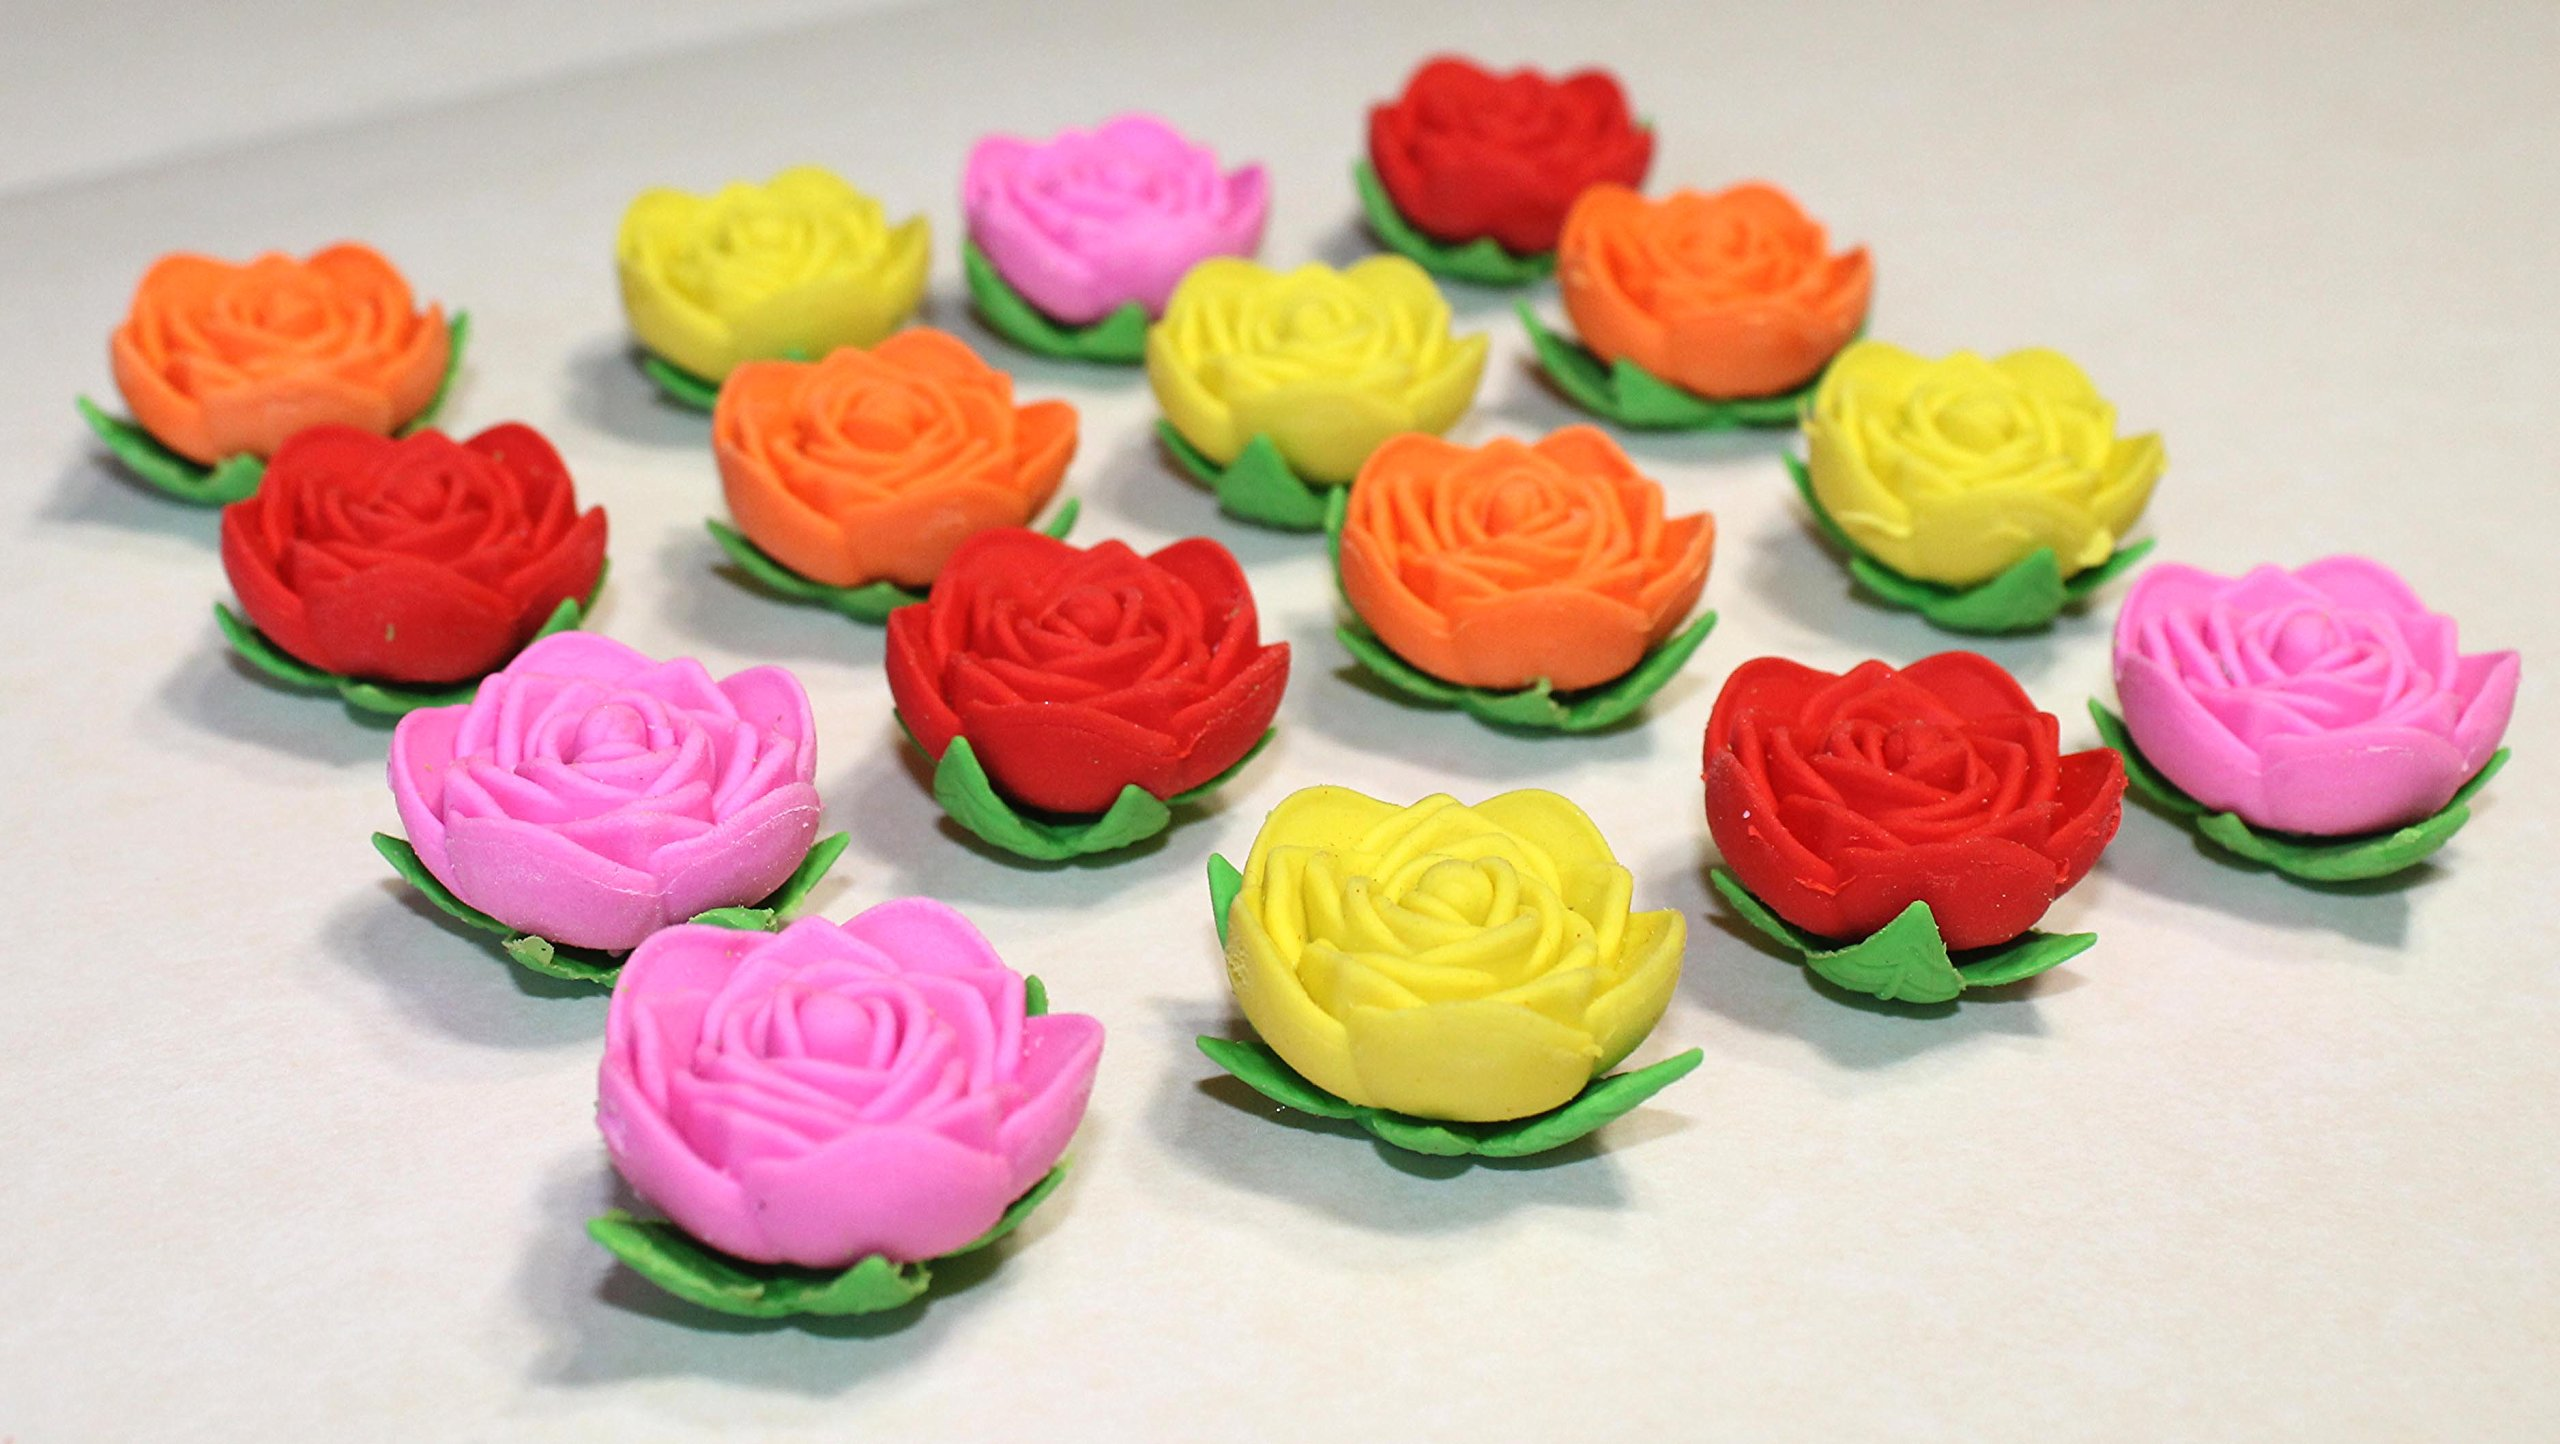 Lucore Rose Pencil Top Erasers - 16 pcs Colorful Flower Shaped Kids Pen Cap Toppers by Lucore Home (Image #3)